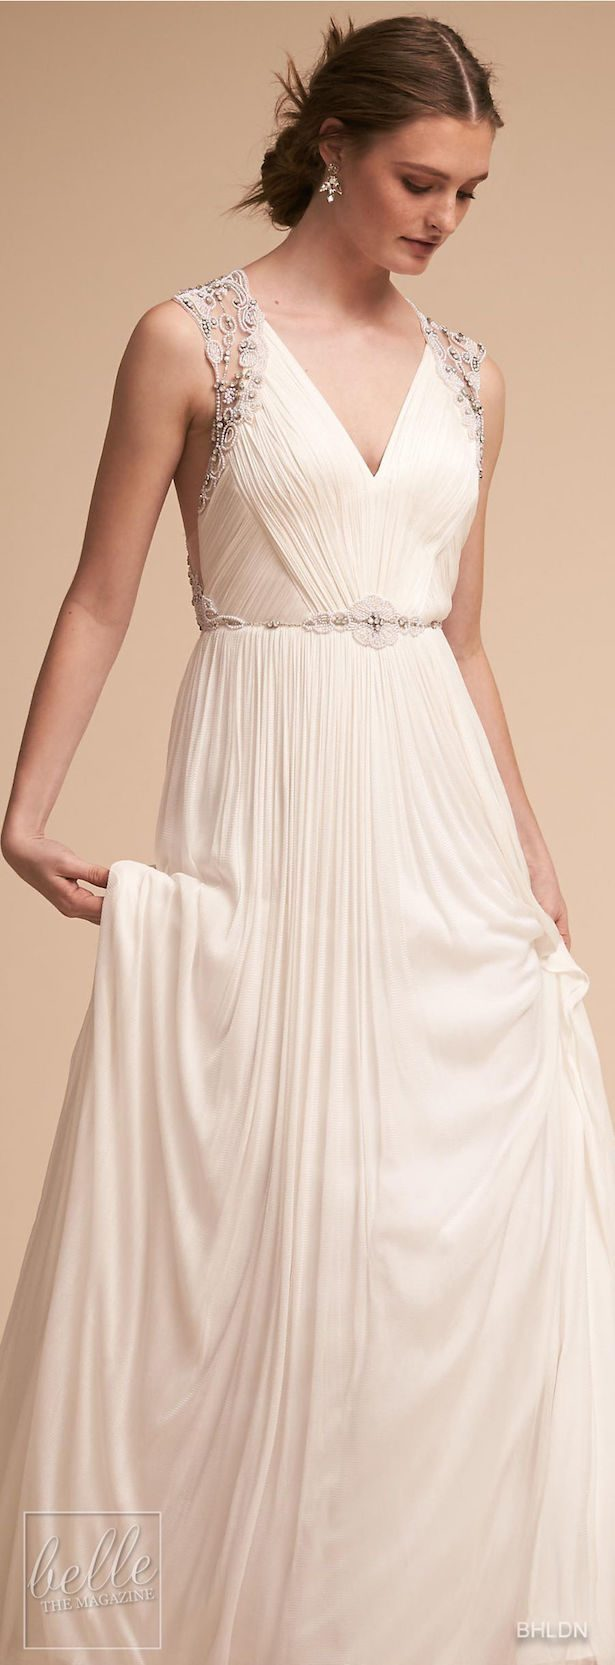 a75ba8ed7b9 Our Favorite Wedding Dresses from BHLDN - Belle The Magazine